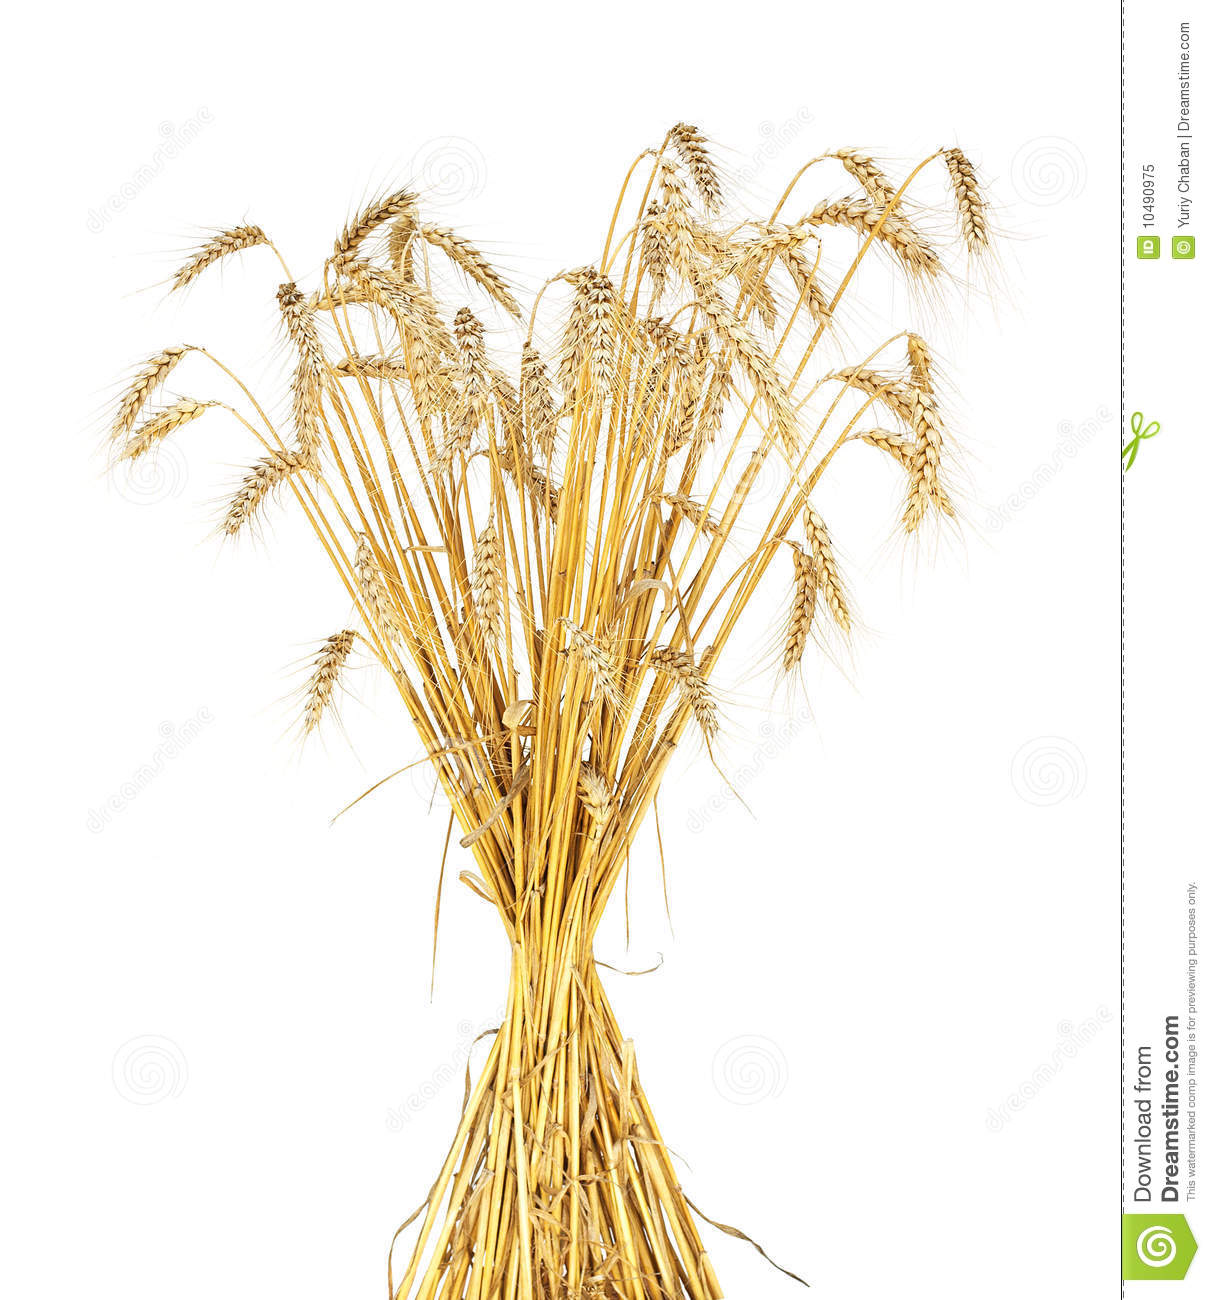 sheaf drawings pictures to pin on pinterest pinsdaddy Sheaf of Wheat Clip Art Sheath of Wheat Coins